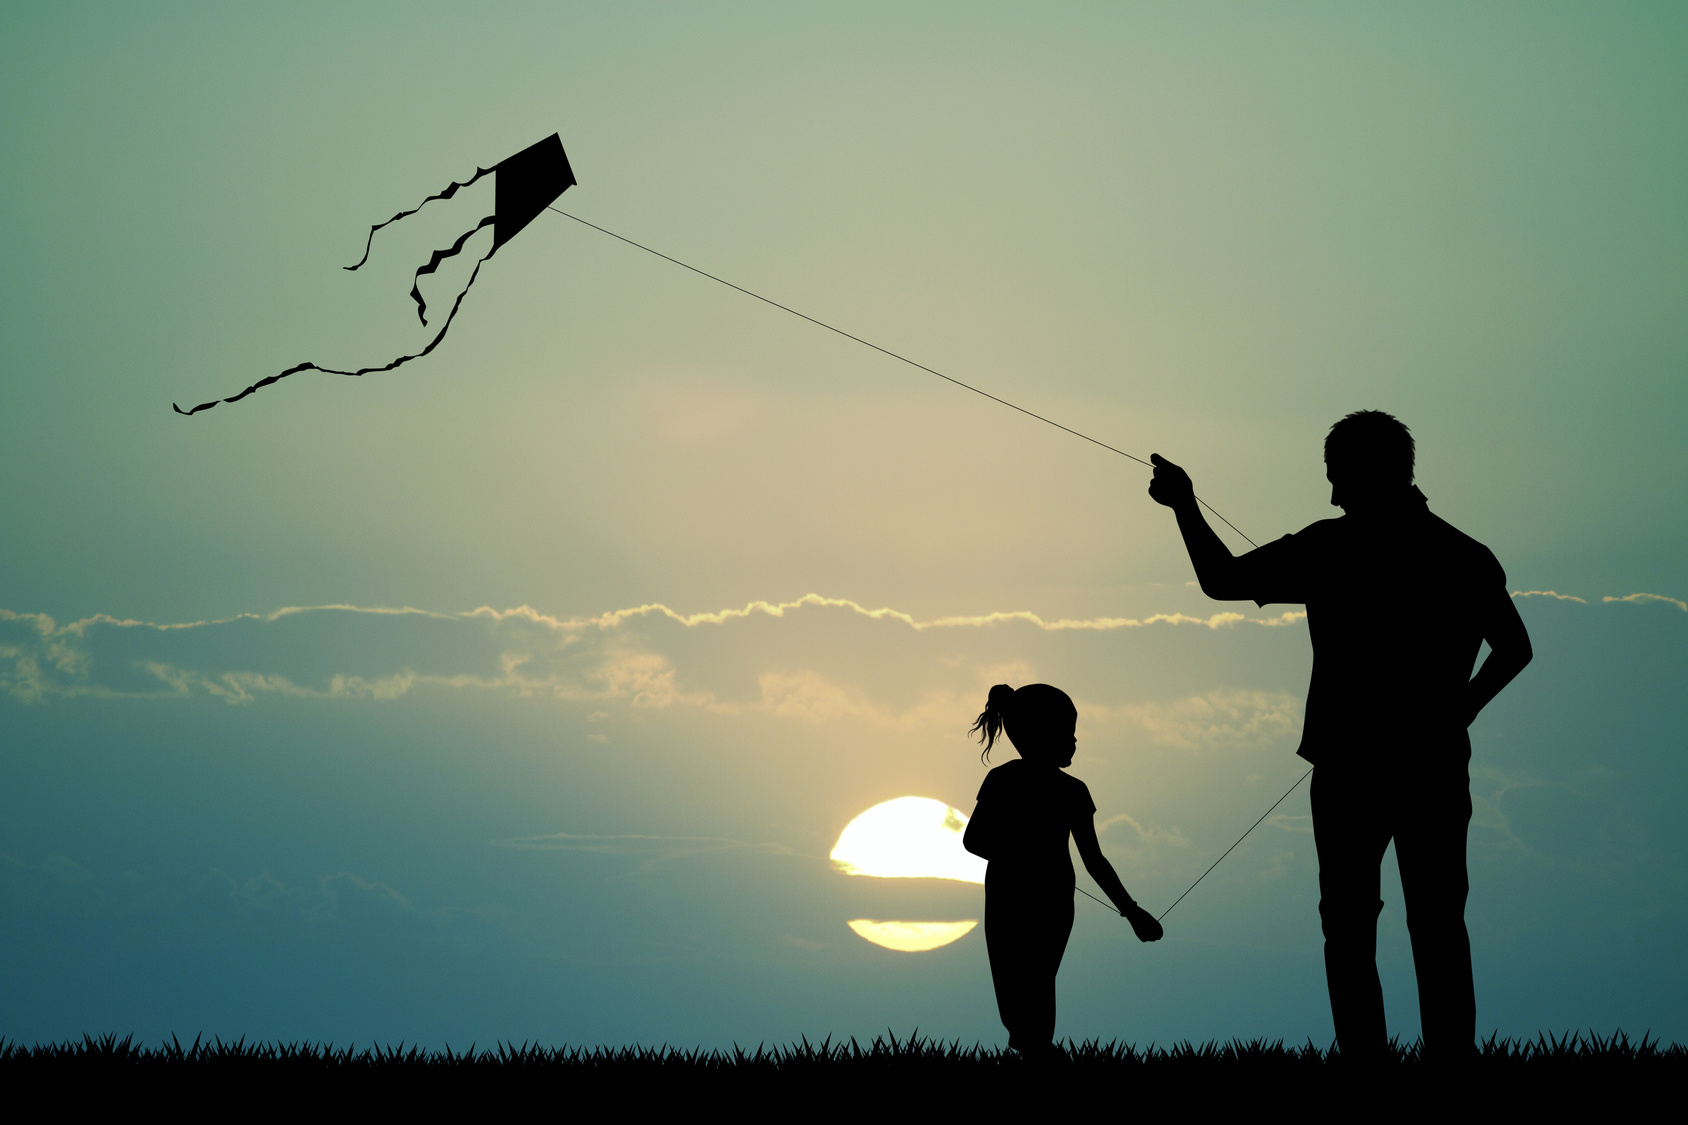 father and son with kite